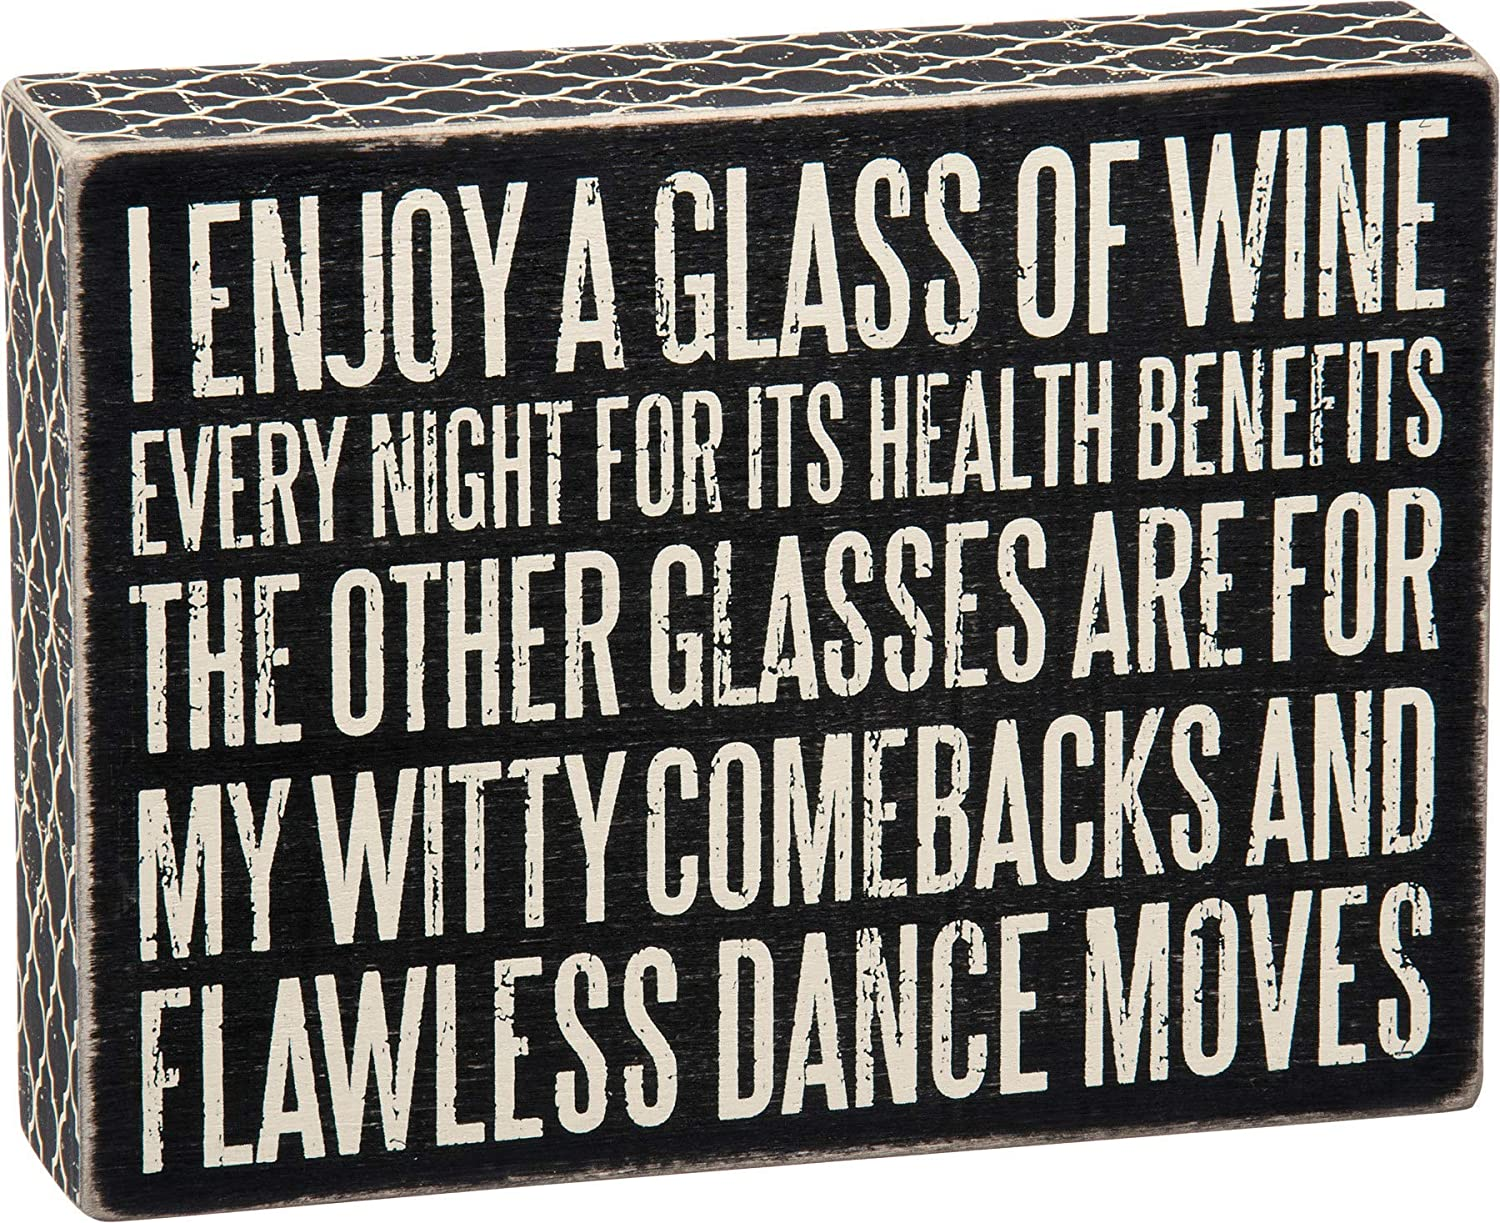 Primitives by Kathy Lattice Trimmed Box Sign, 8 x 6-Inches, Glass of Wine